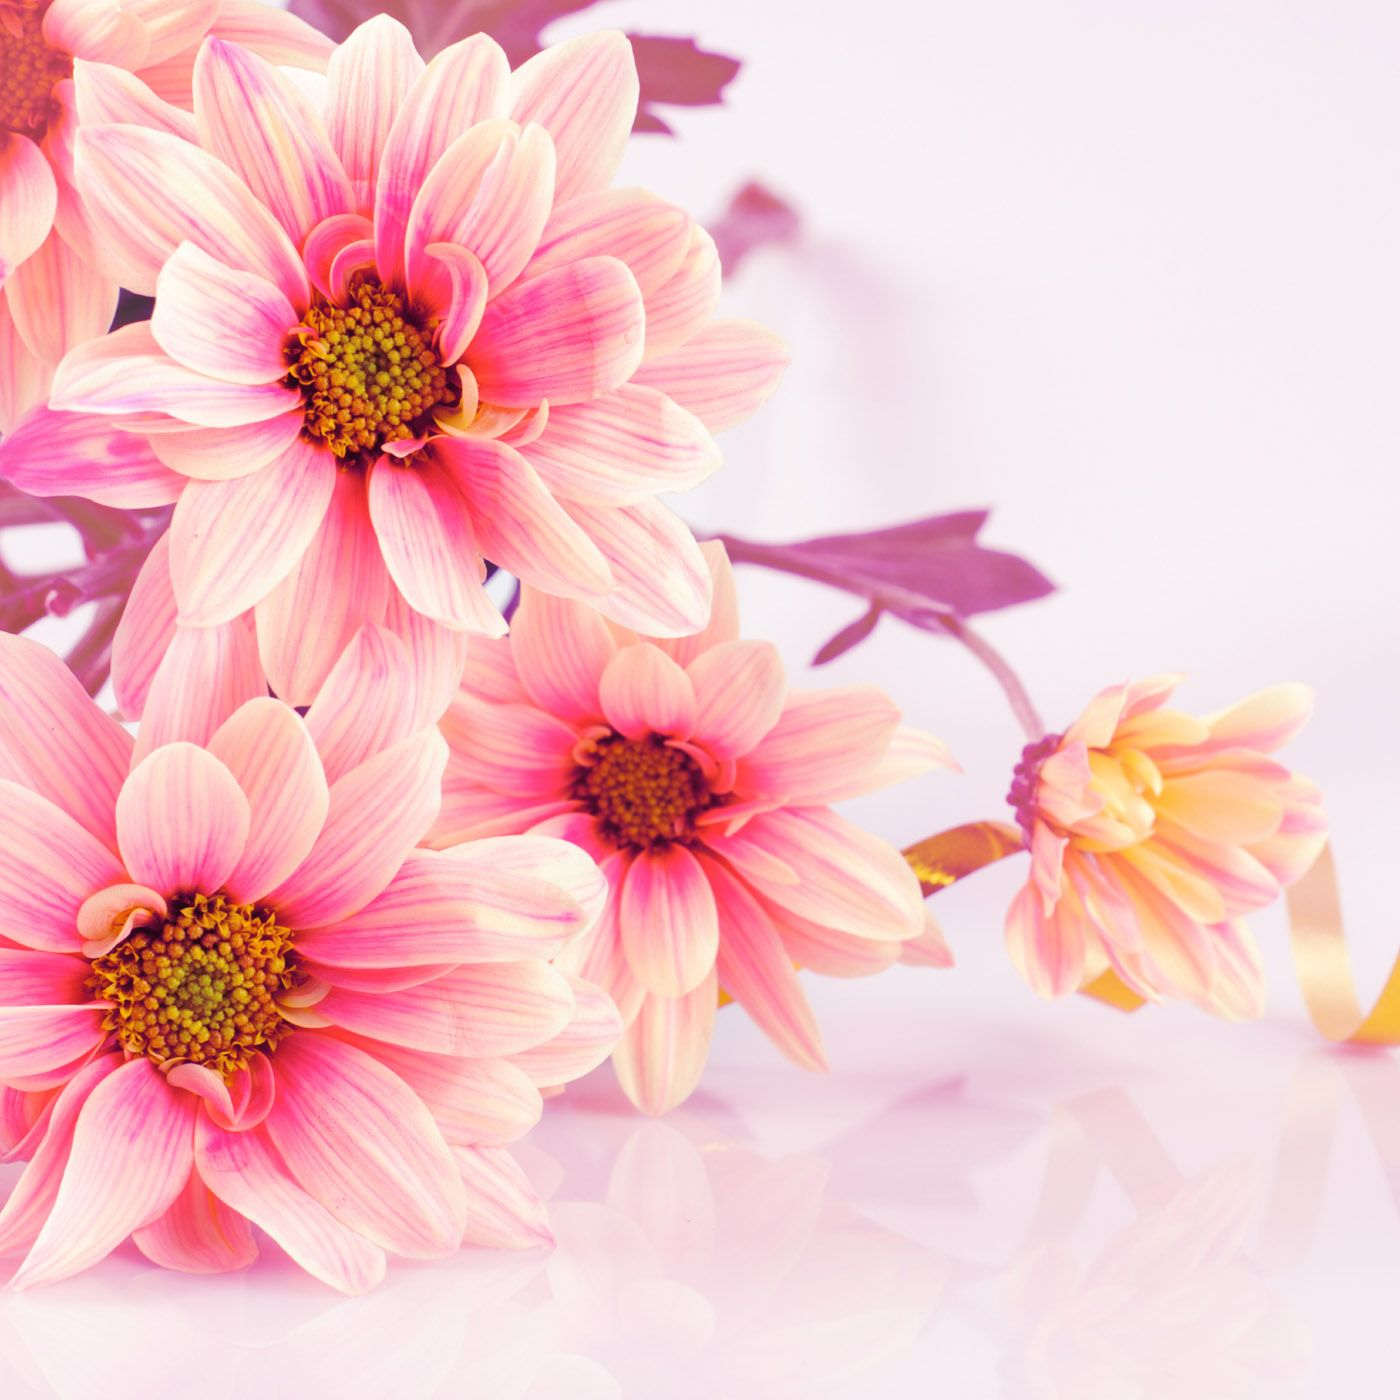 BEAUTIFUL FLOWER WALLPAPERS FREE TO DOWNLOAD Flower wallpaper